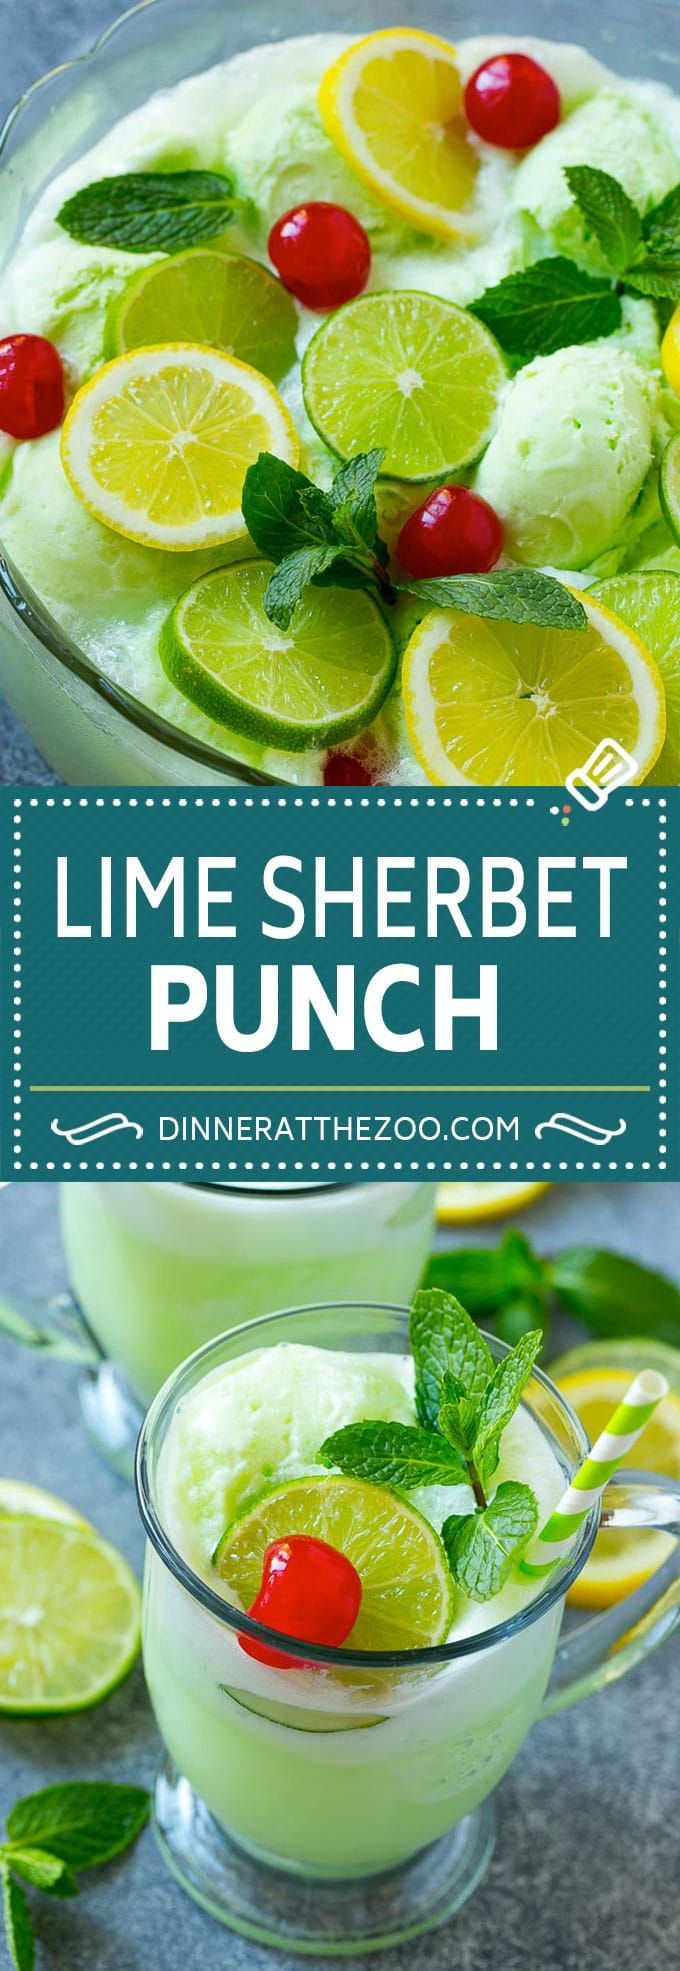 Lime Sherbet Punch | Party Punch Recipe | Sherbet Punch Recipe | Limeade Recipe